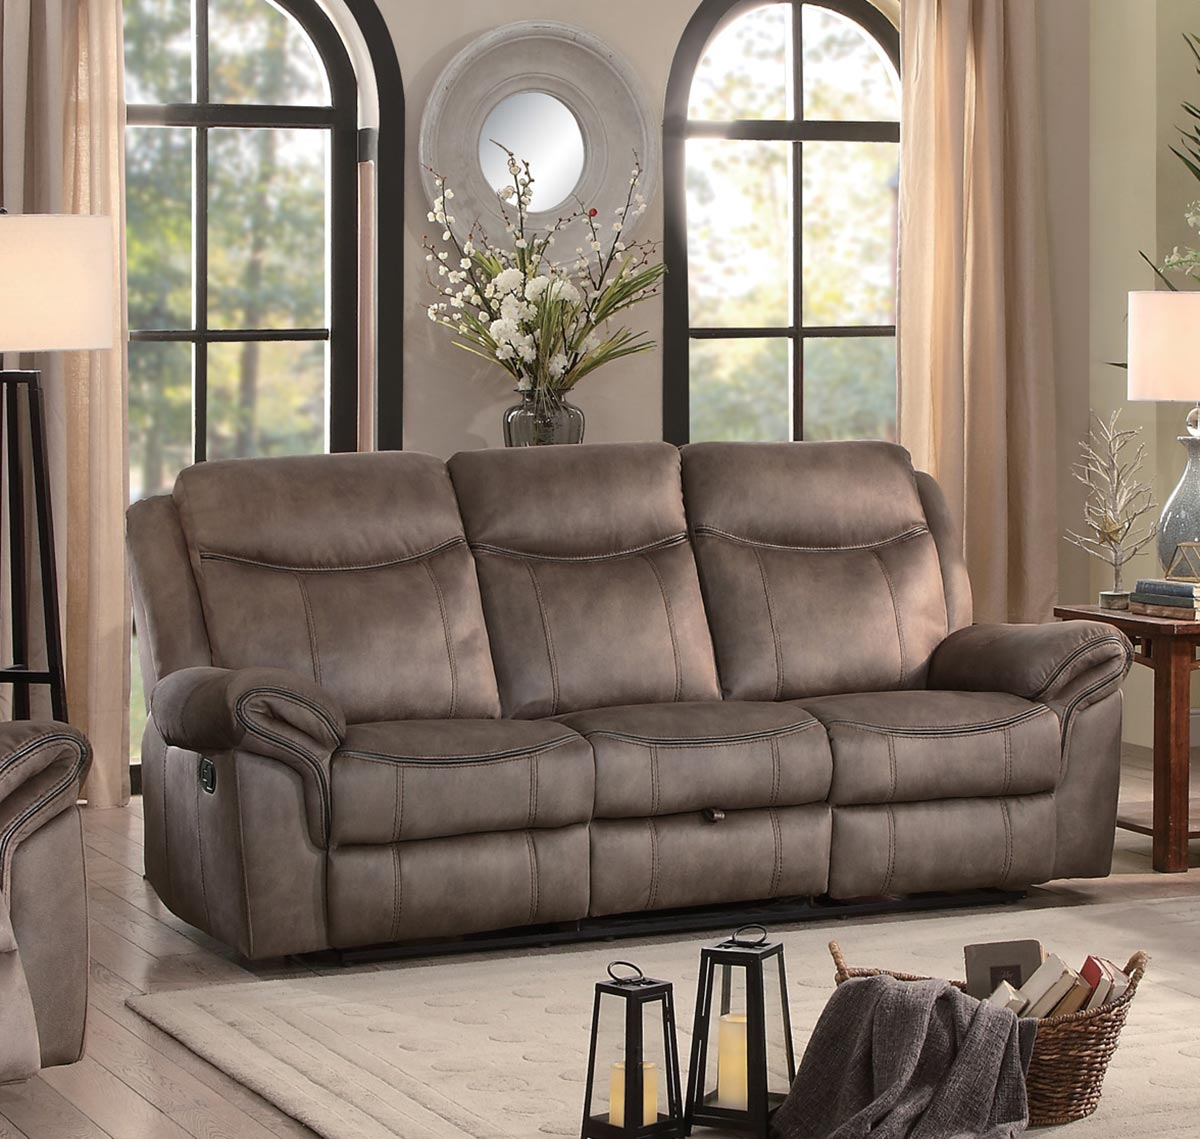 Homelegance Aram Brown Double Reclining Sofa With Drop Down Table And Center Storage Drawer